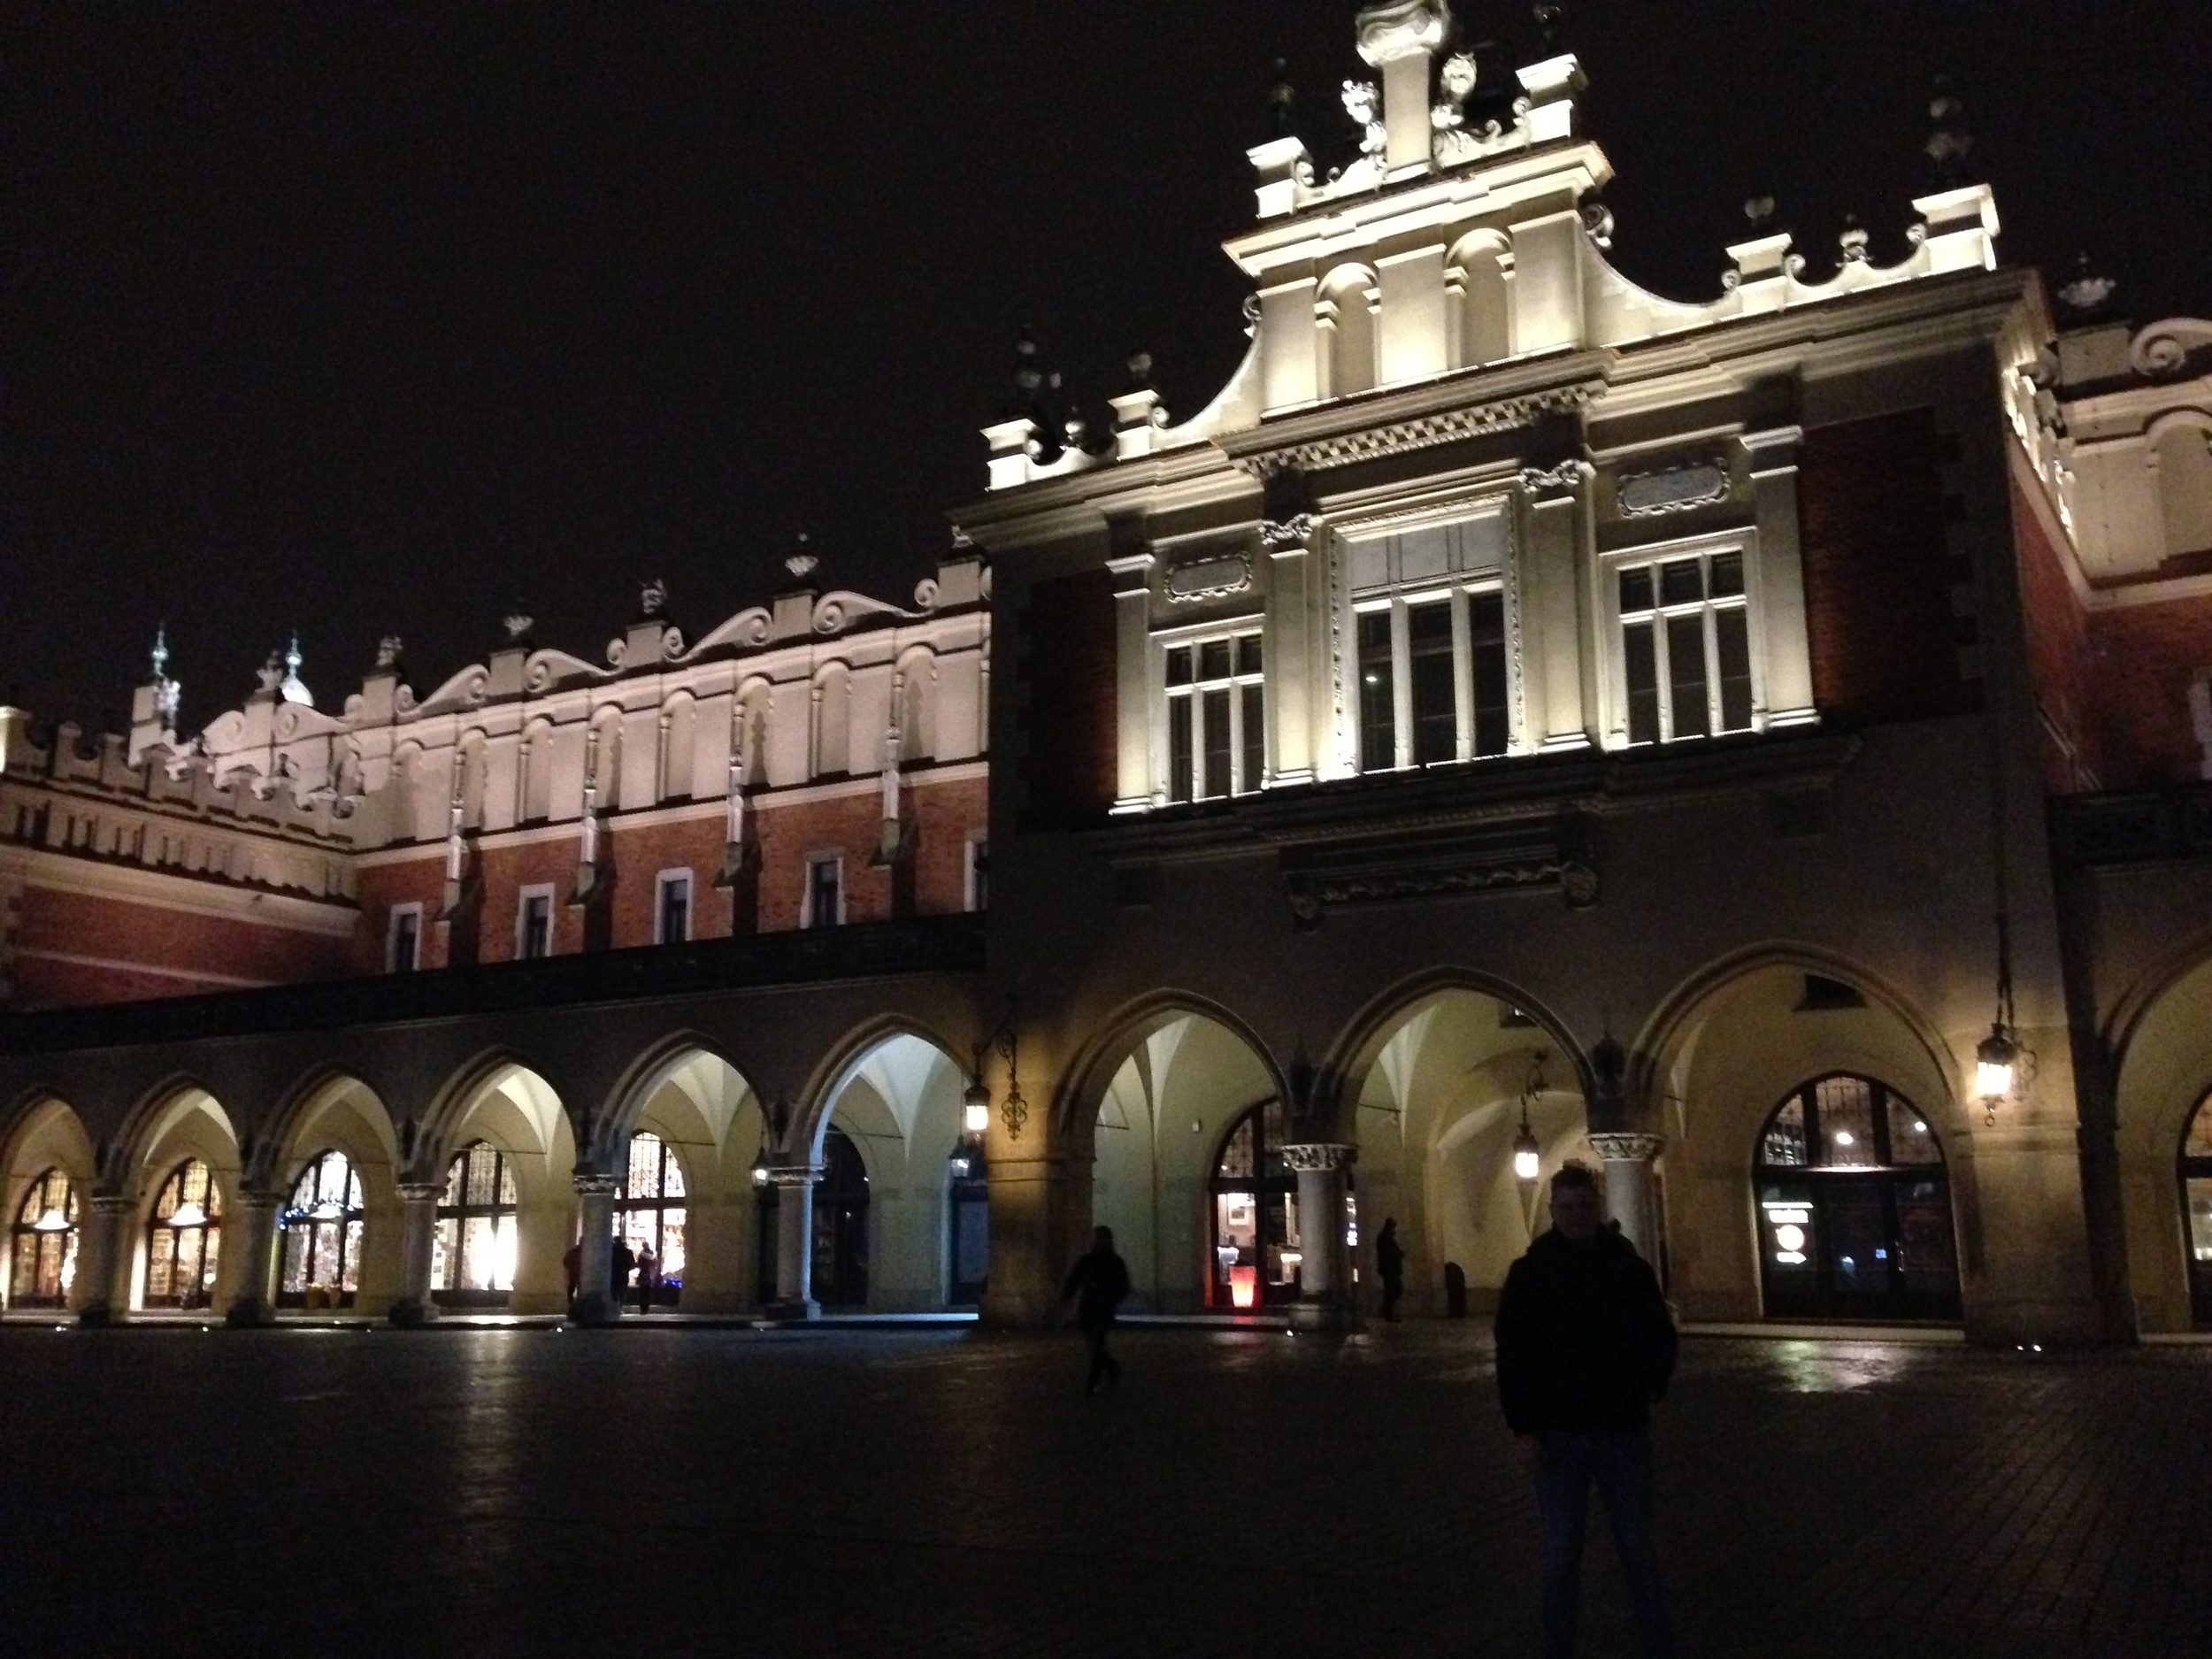 Behind me, well a silhouette of me, is Cloth Hall, which sits right in the middle of Krakow's Main Square.